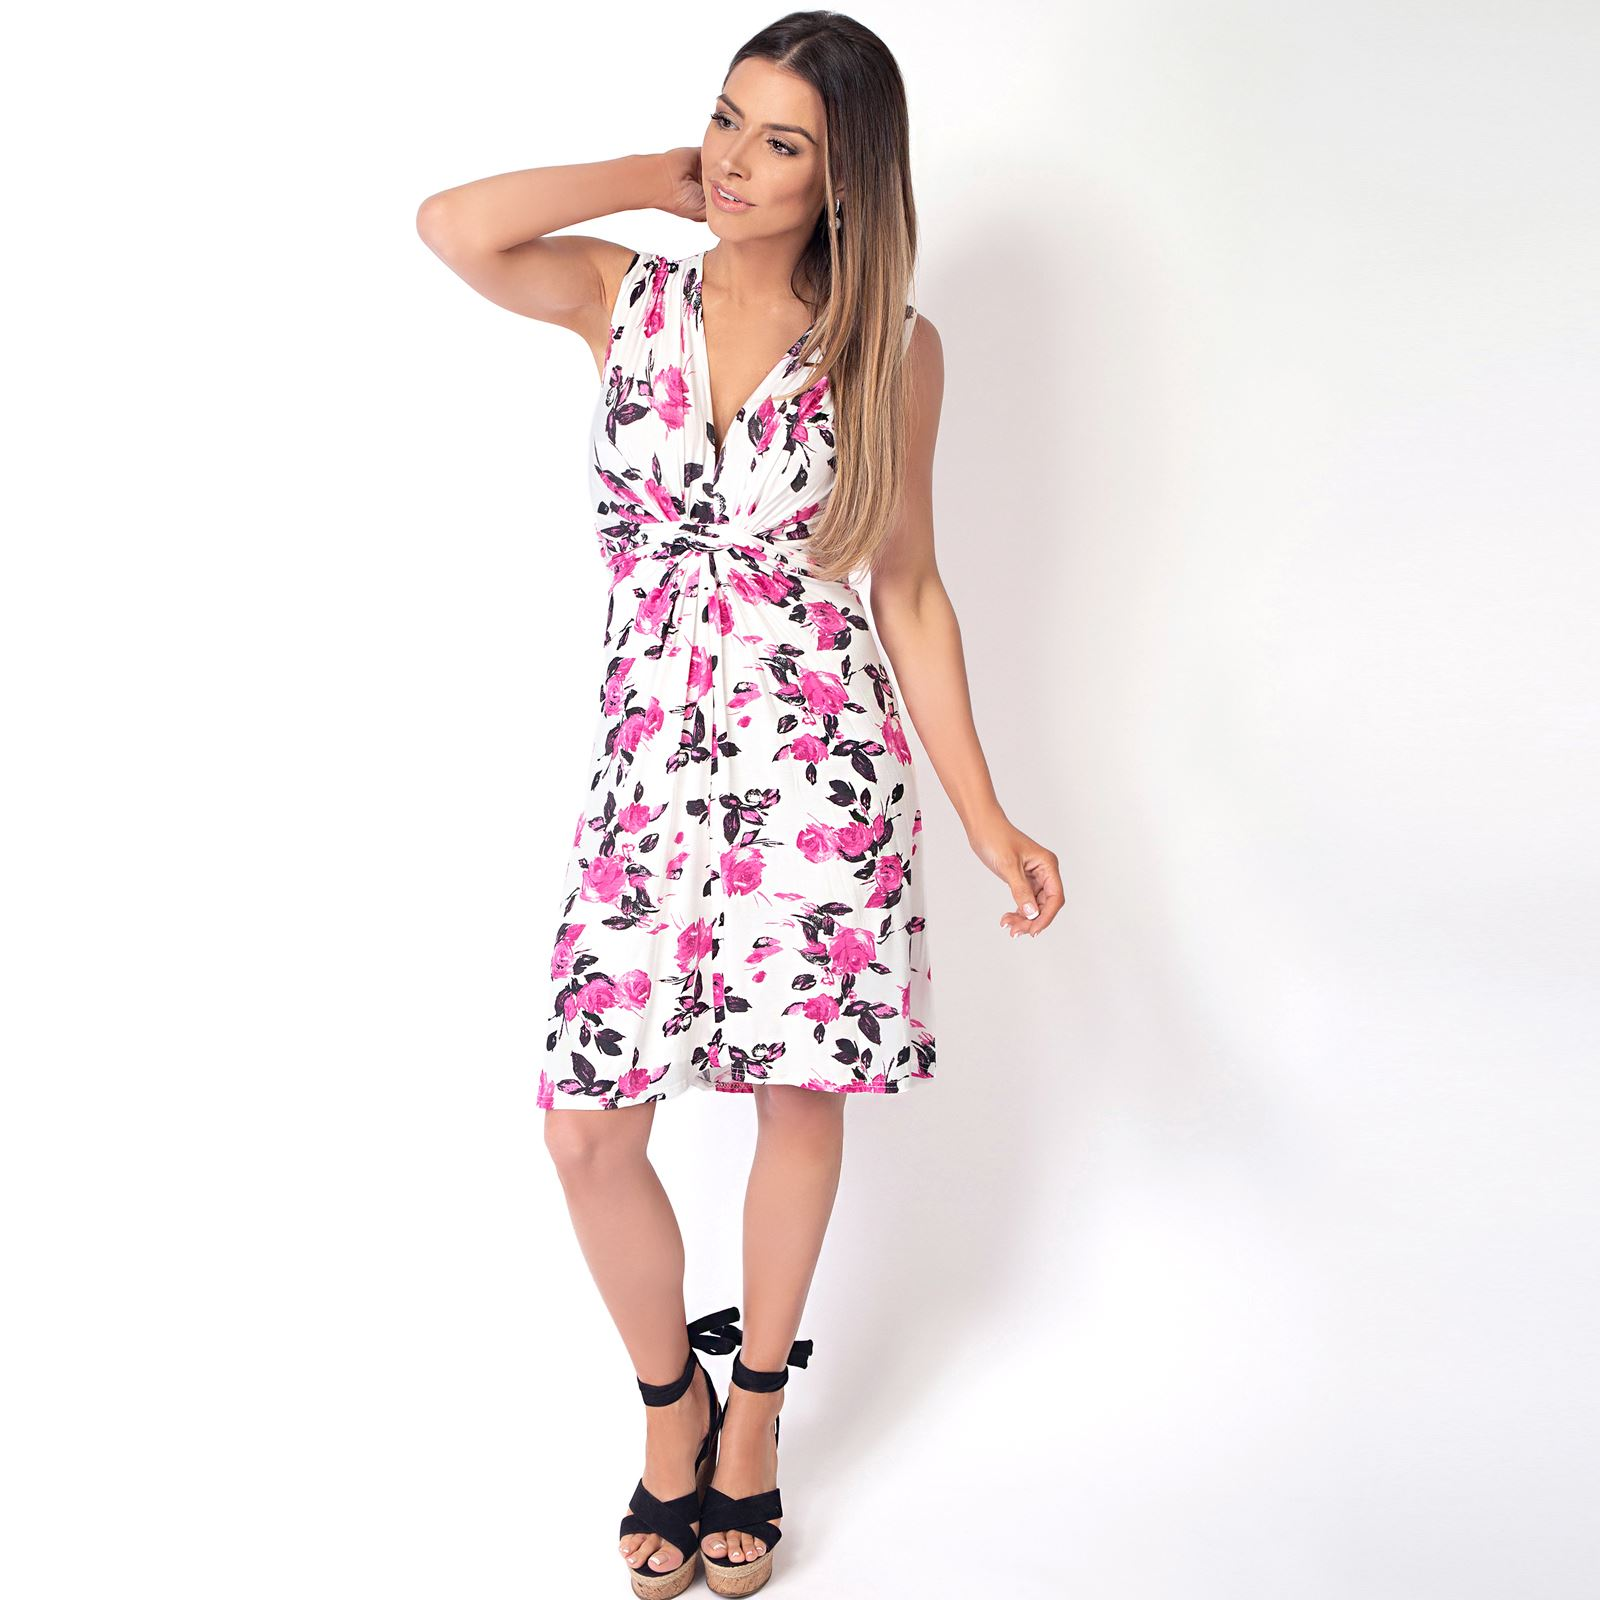 Womens-Floral-Print-Dress-Midi-Drape-Ruched-Front-Knot-Tie-Belt-Casual-Party thumbnail 9